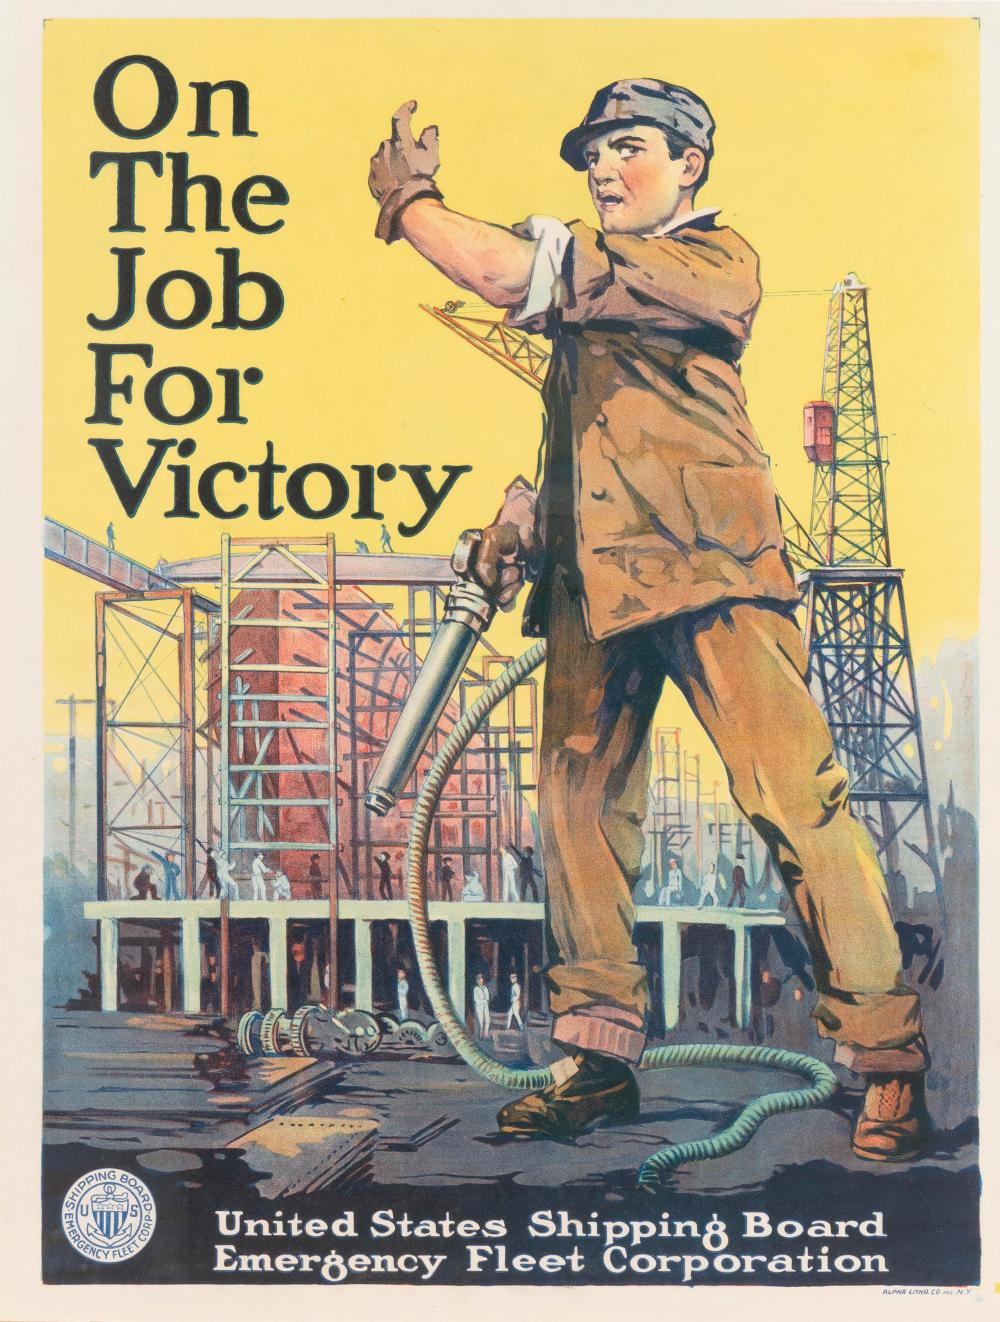 """ON THE JOB FOR VICTORY"" WORLD WAR I POSTER For the United States Shipping Board Emergency Fleet Corporation, published by Alpha Lit..."